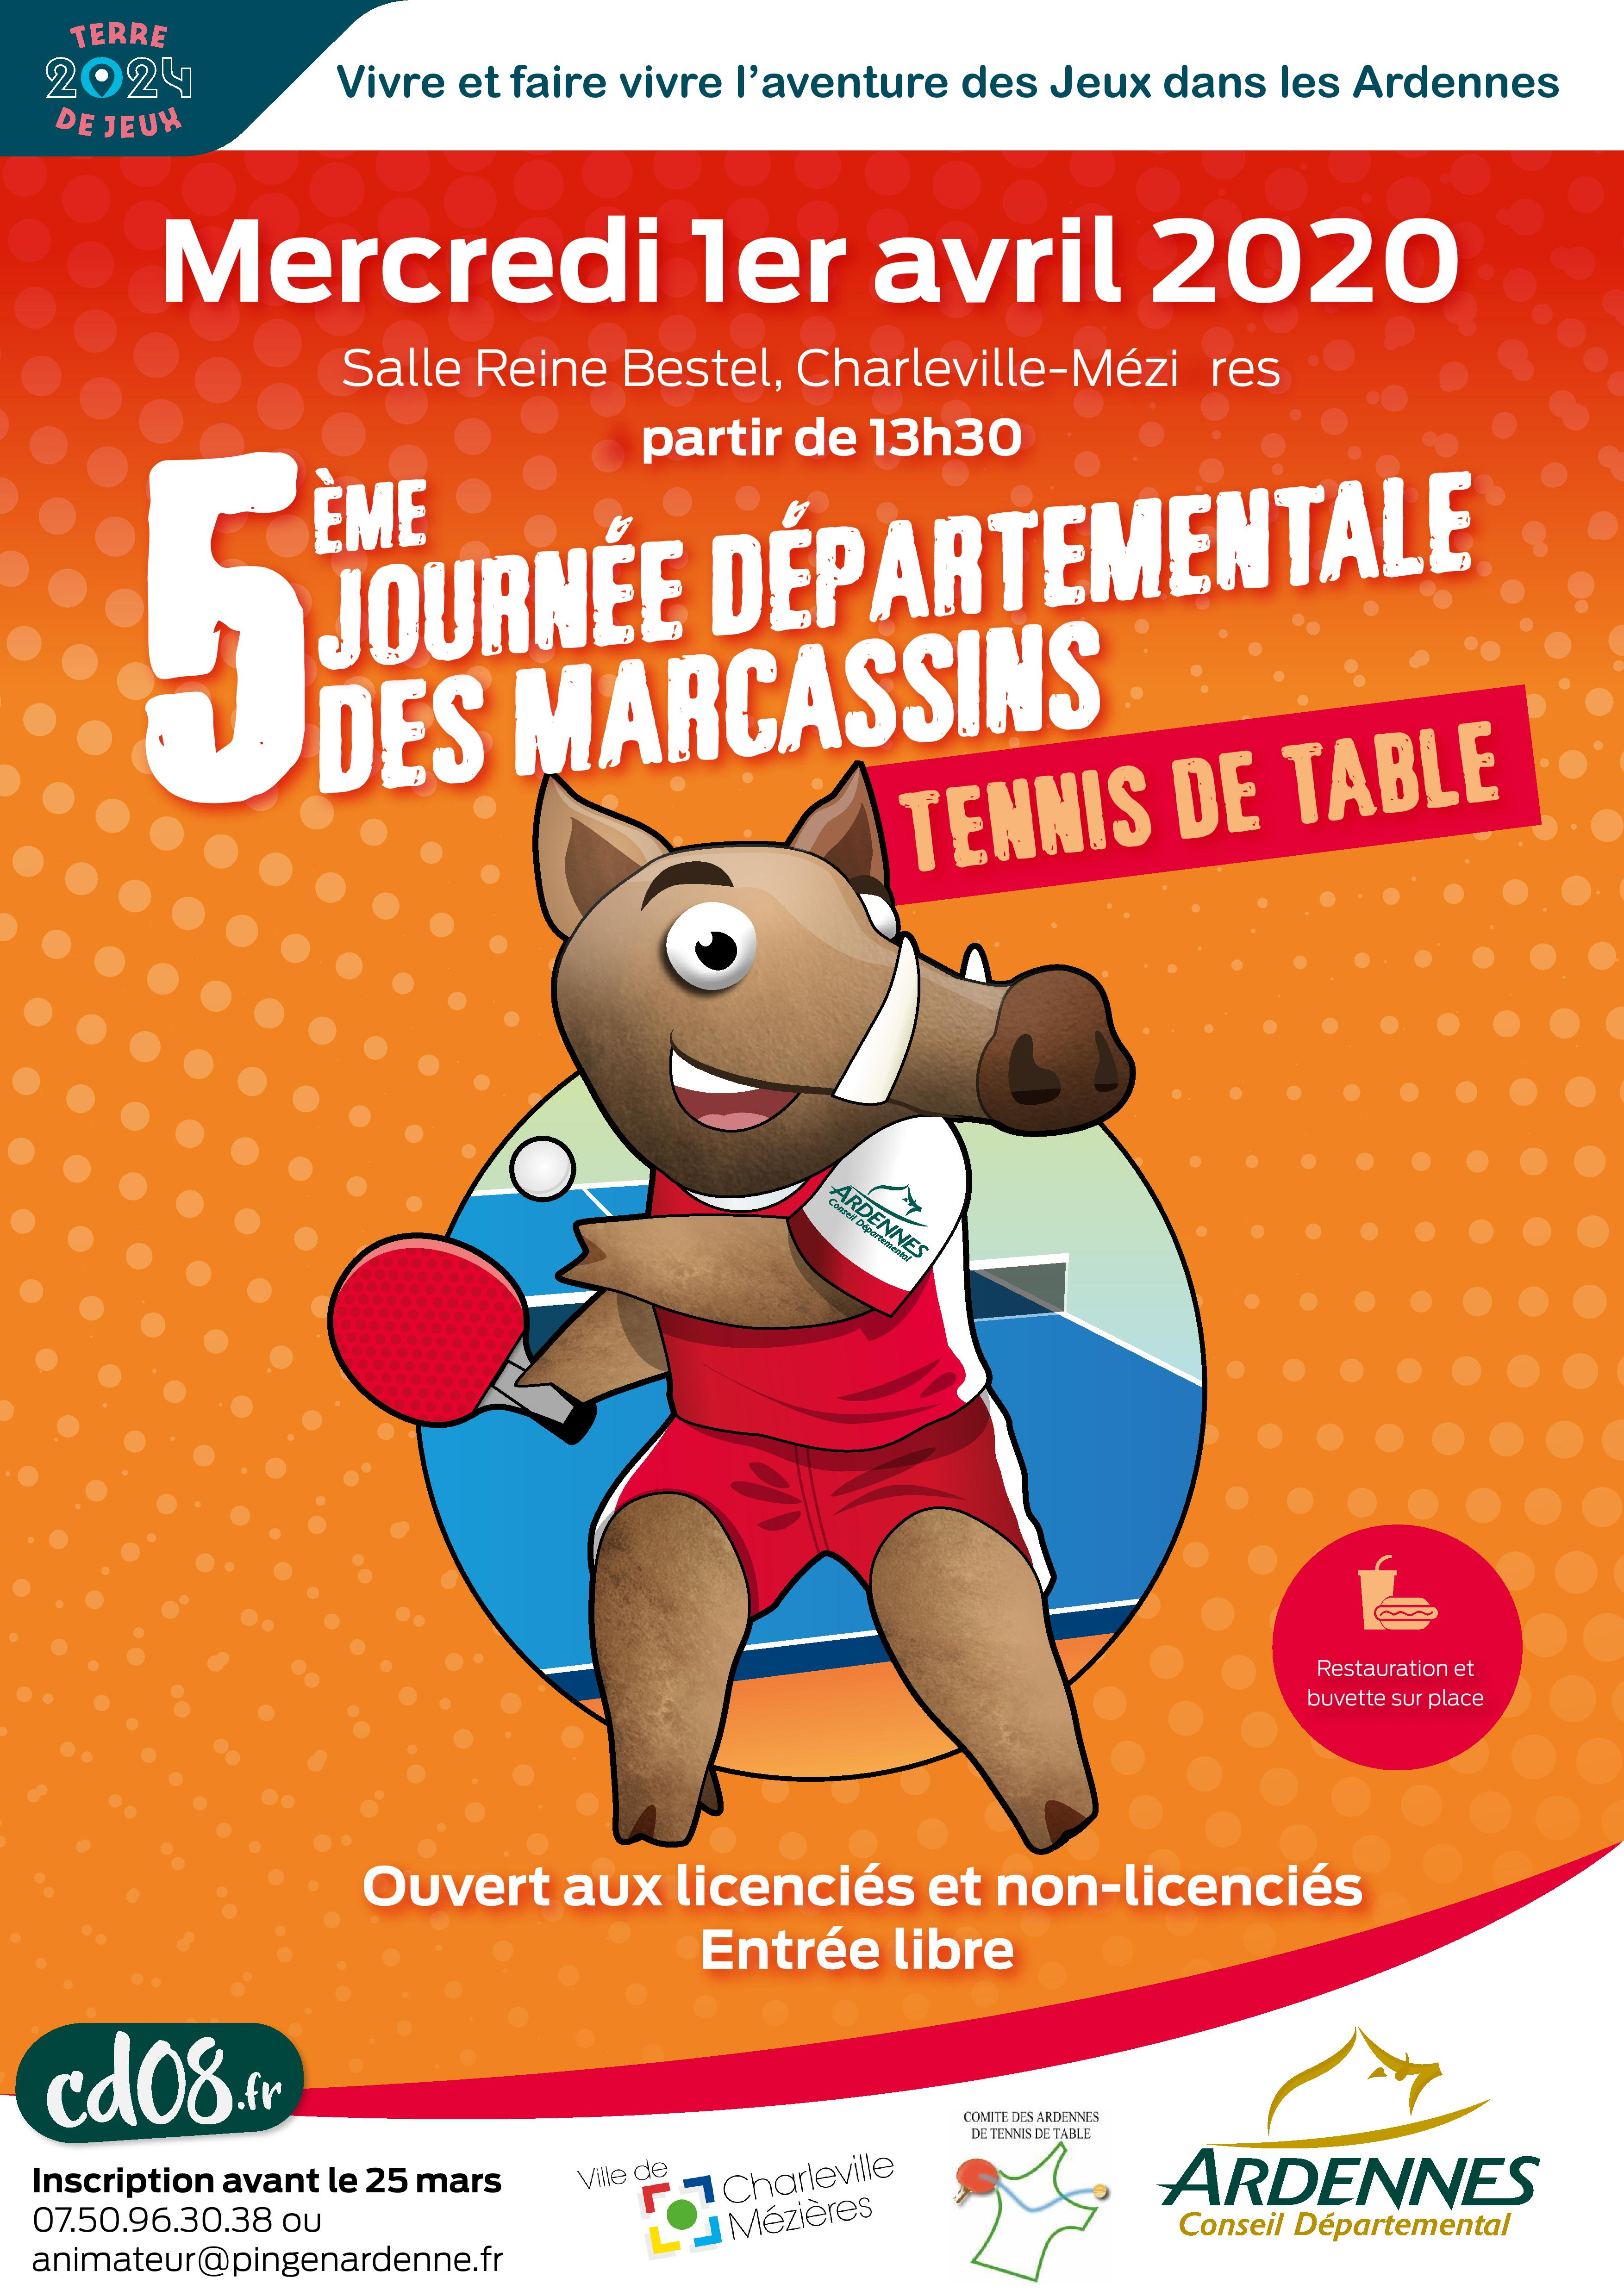 data/2019/competitions/jeunes/marcasins/marc/photo/marcassins-tennis-table-2020.jpg